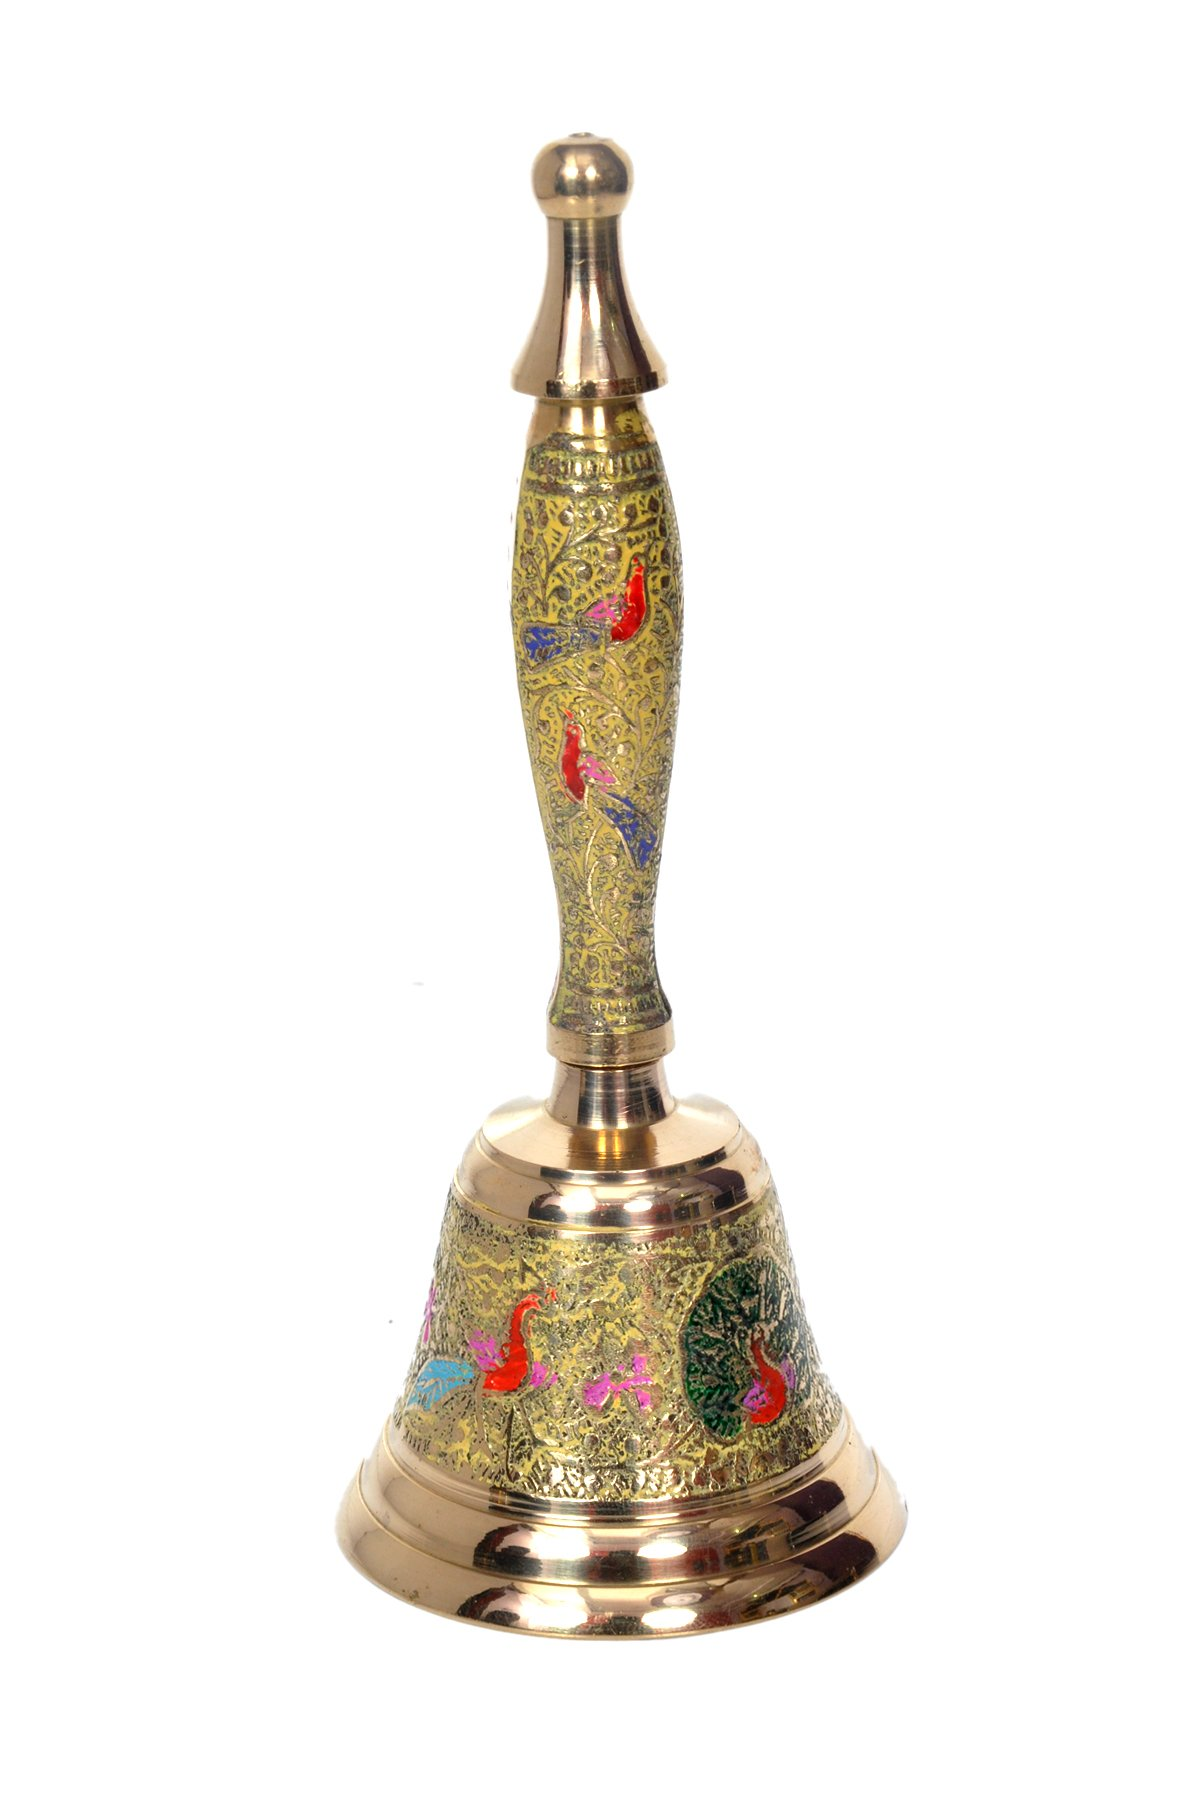 Hashcart Indian Traditional Colorful Musical Hand Held Brass Bell/Ghanti for Puja/Pooja, Prayer, Indian Festivals & Christmas, Yellow